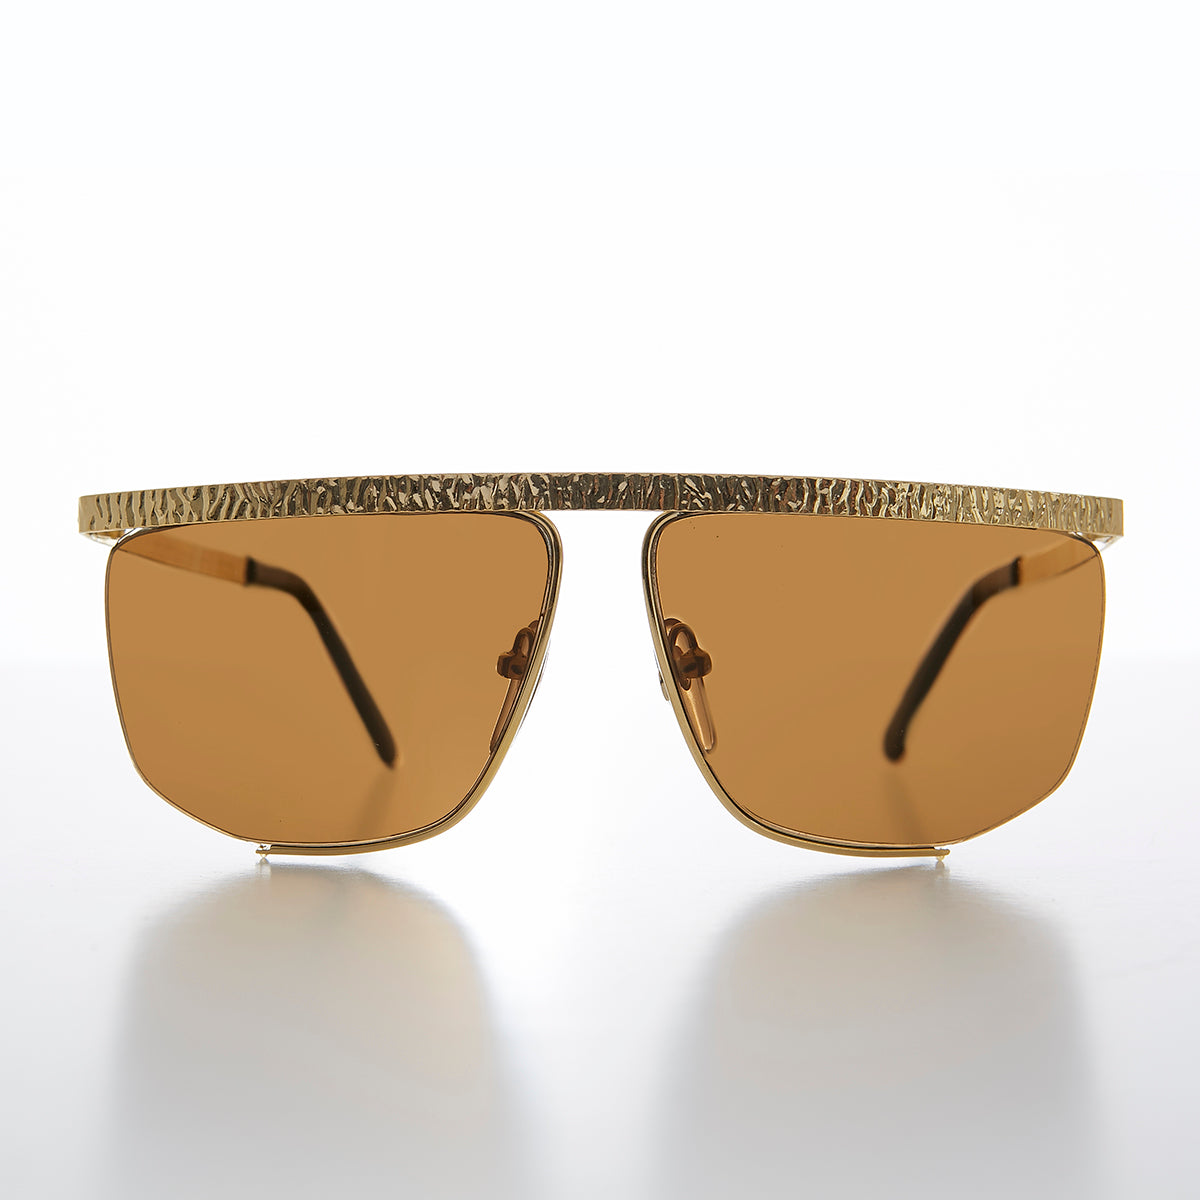 Gold Semi Rimless Hip Hop Vintage Sunglasses